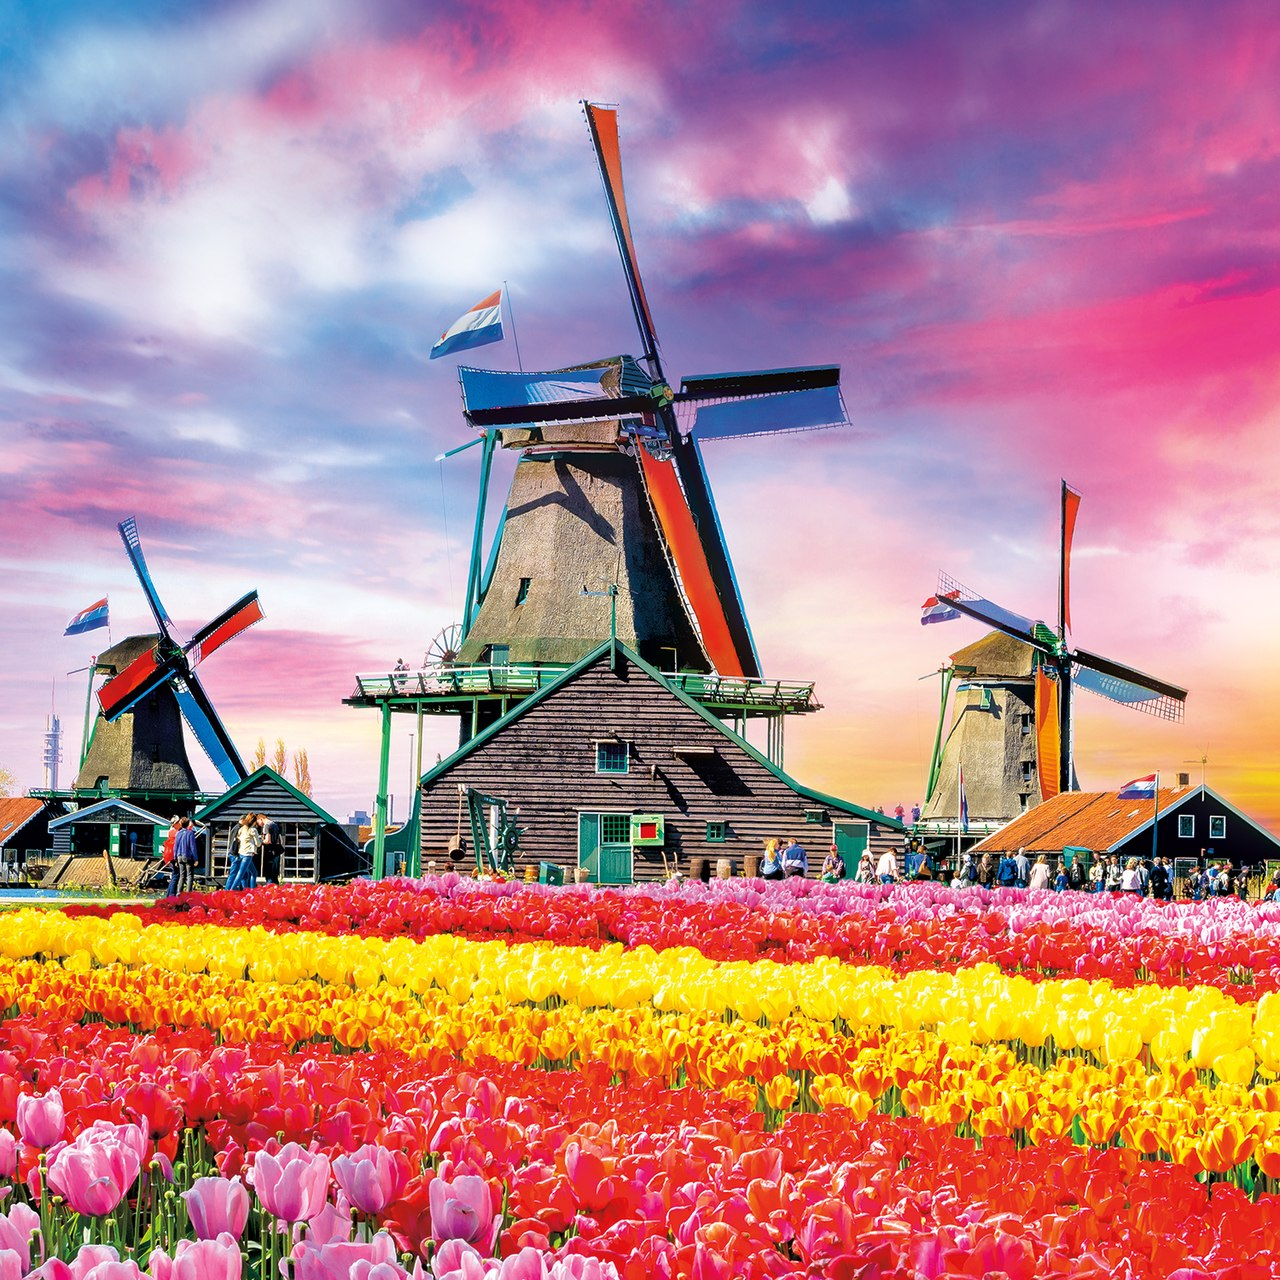 Tulips in Bloom - 300pc Large Format Jigsaw Puzzle by Buffalo Games  			  					NEW